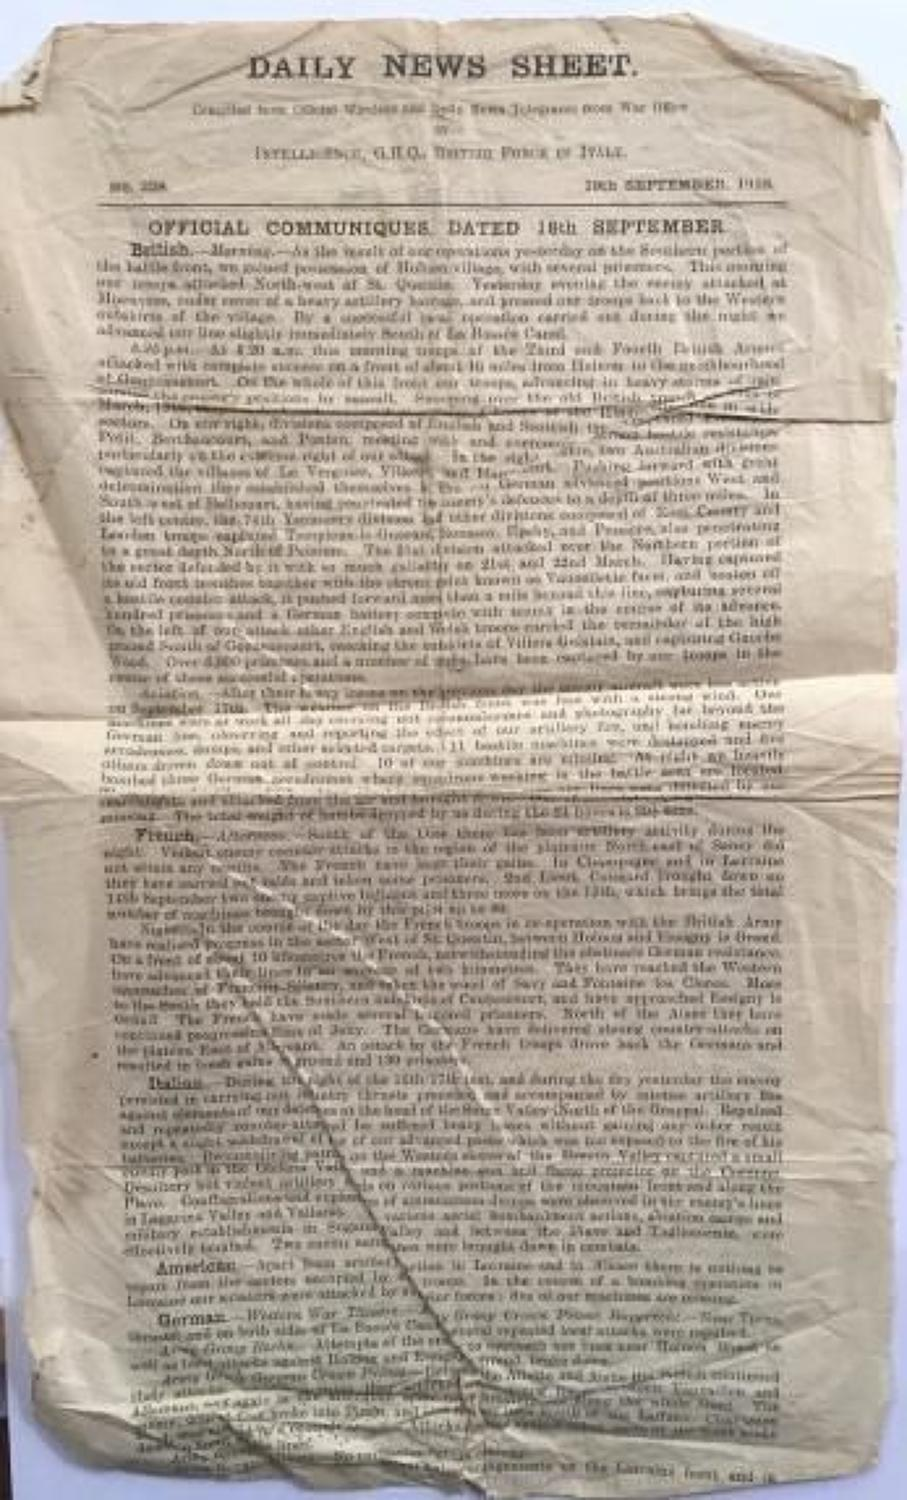 WW1 September 1918 Dailey News Sheet British Forces in Italy.